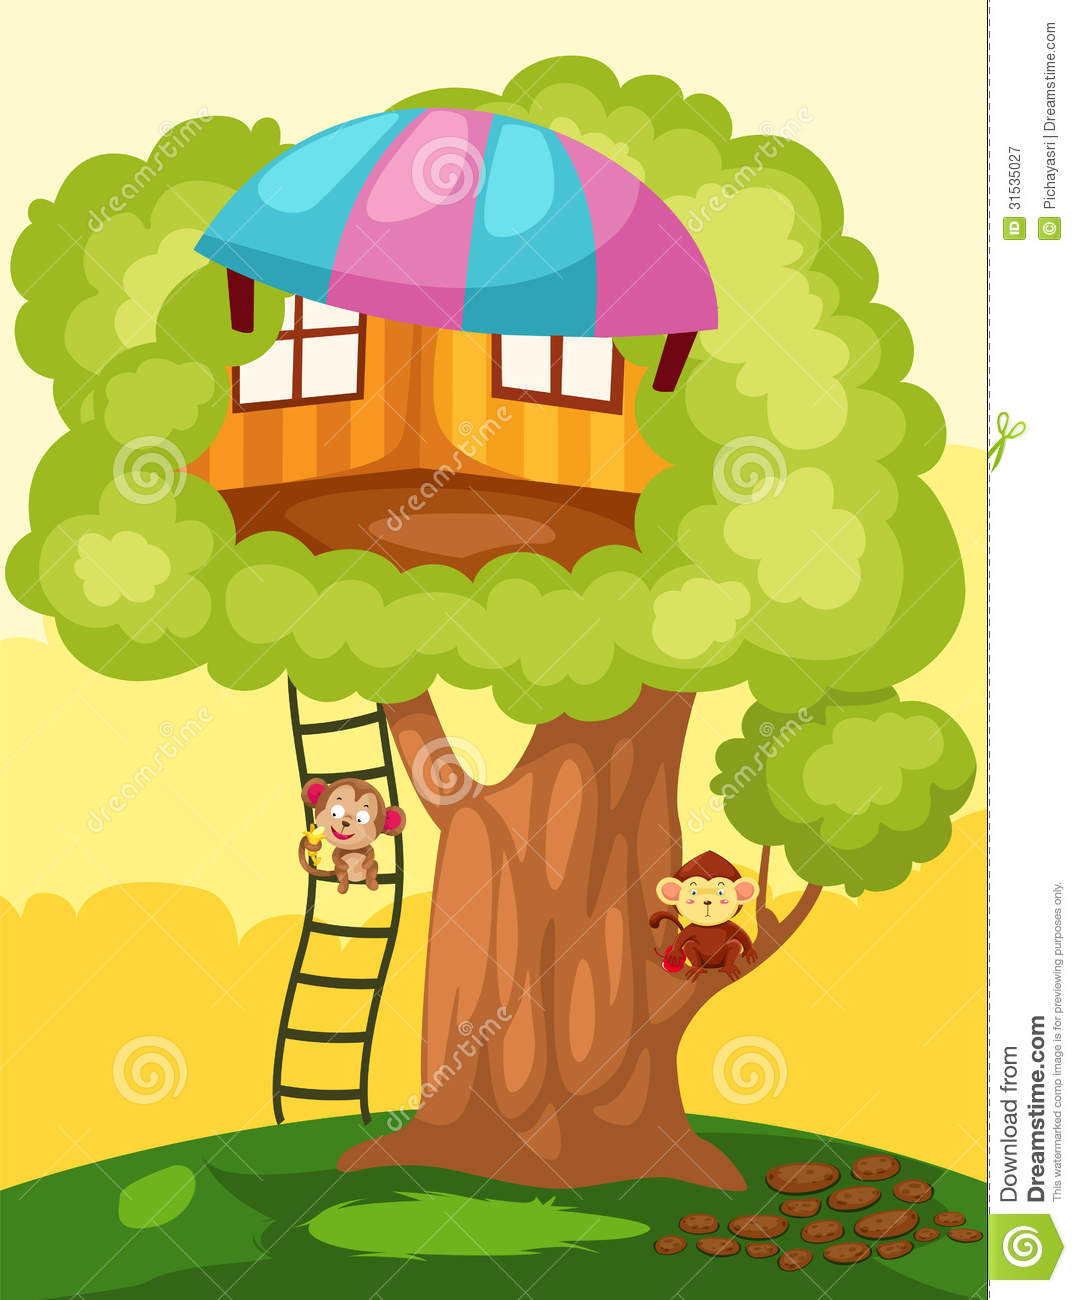 Printable Tree House Plans: Treehouse Stock Vector. Image Of Branches, Fantastic